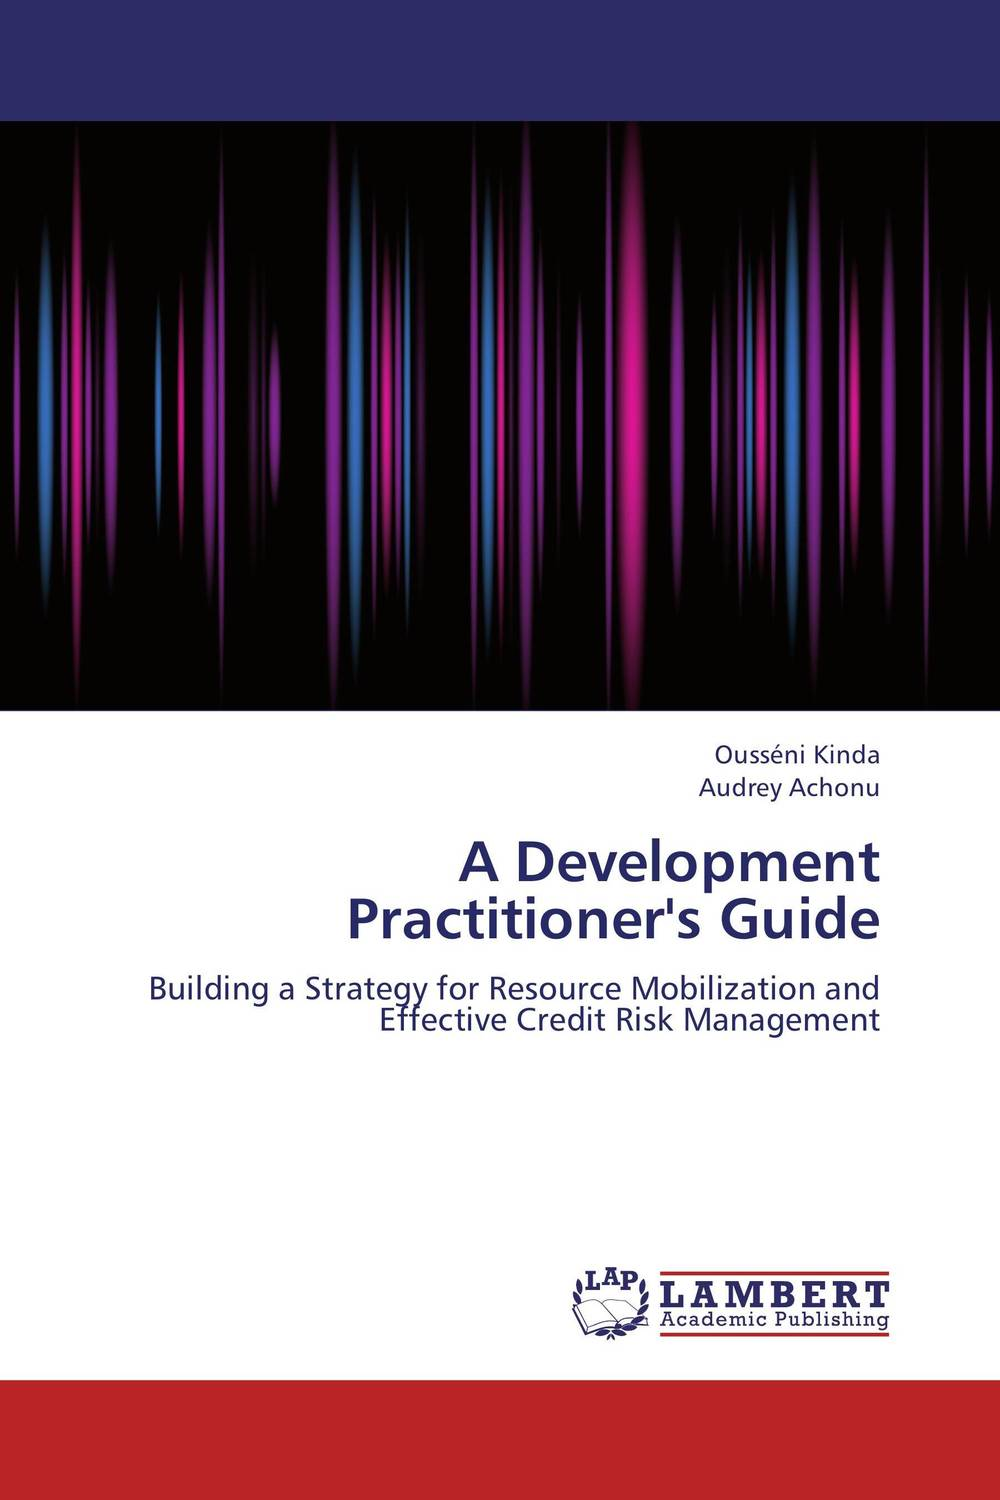 A Development Practitioner's Guide david sussman investment project design a guide to financial and economic analysis with constraints